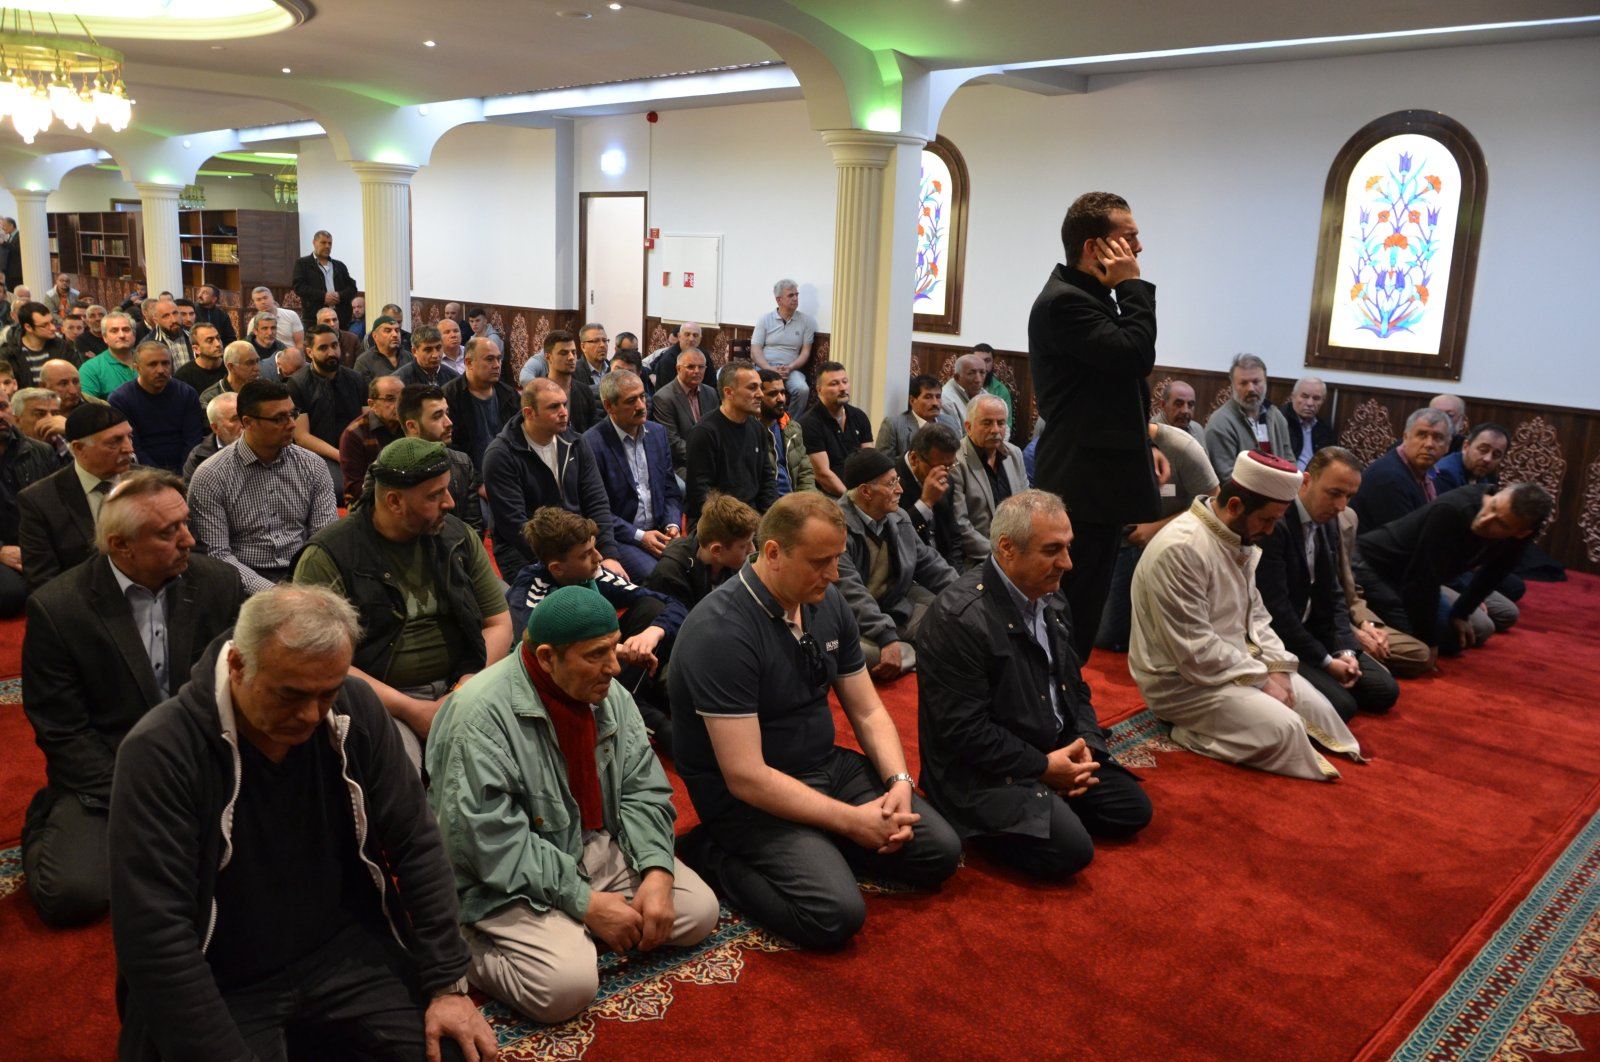 Believers wait for prayer at a mosque in Slagelse, 100 kilometers (62 miles) south of the capital Copenhagen, Denmark, May 9, 2017. (AA Photo)